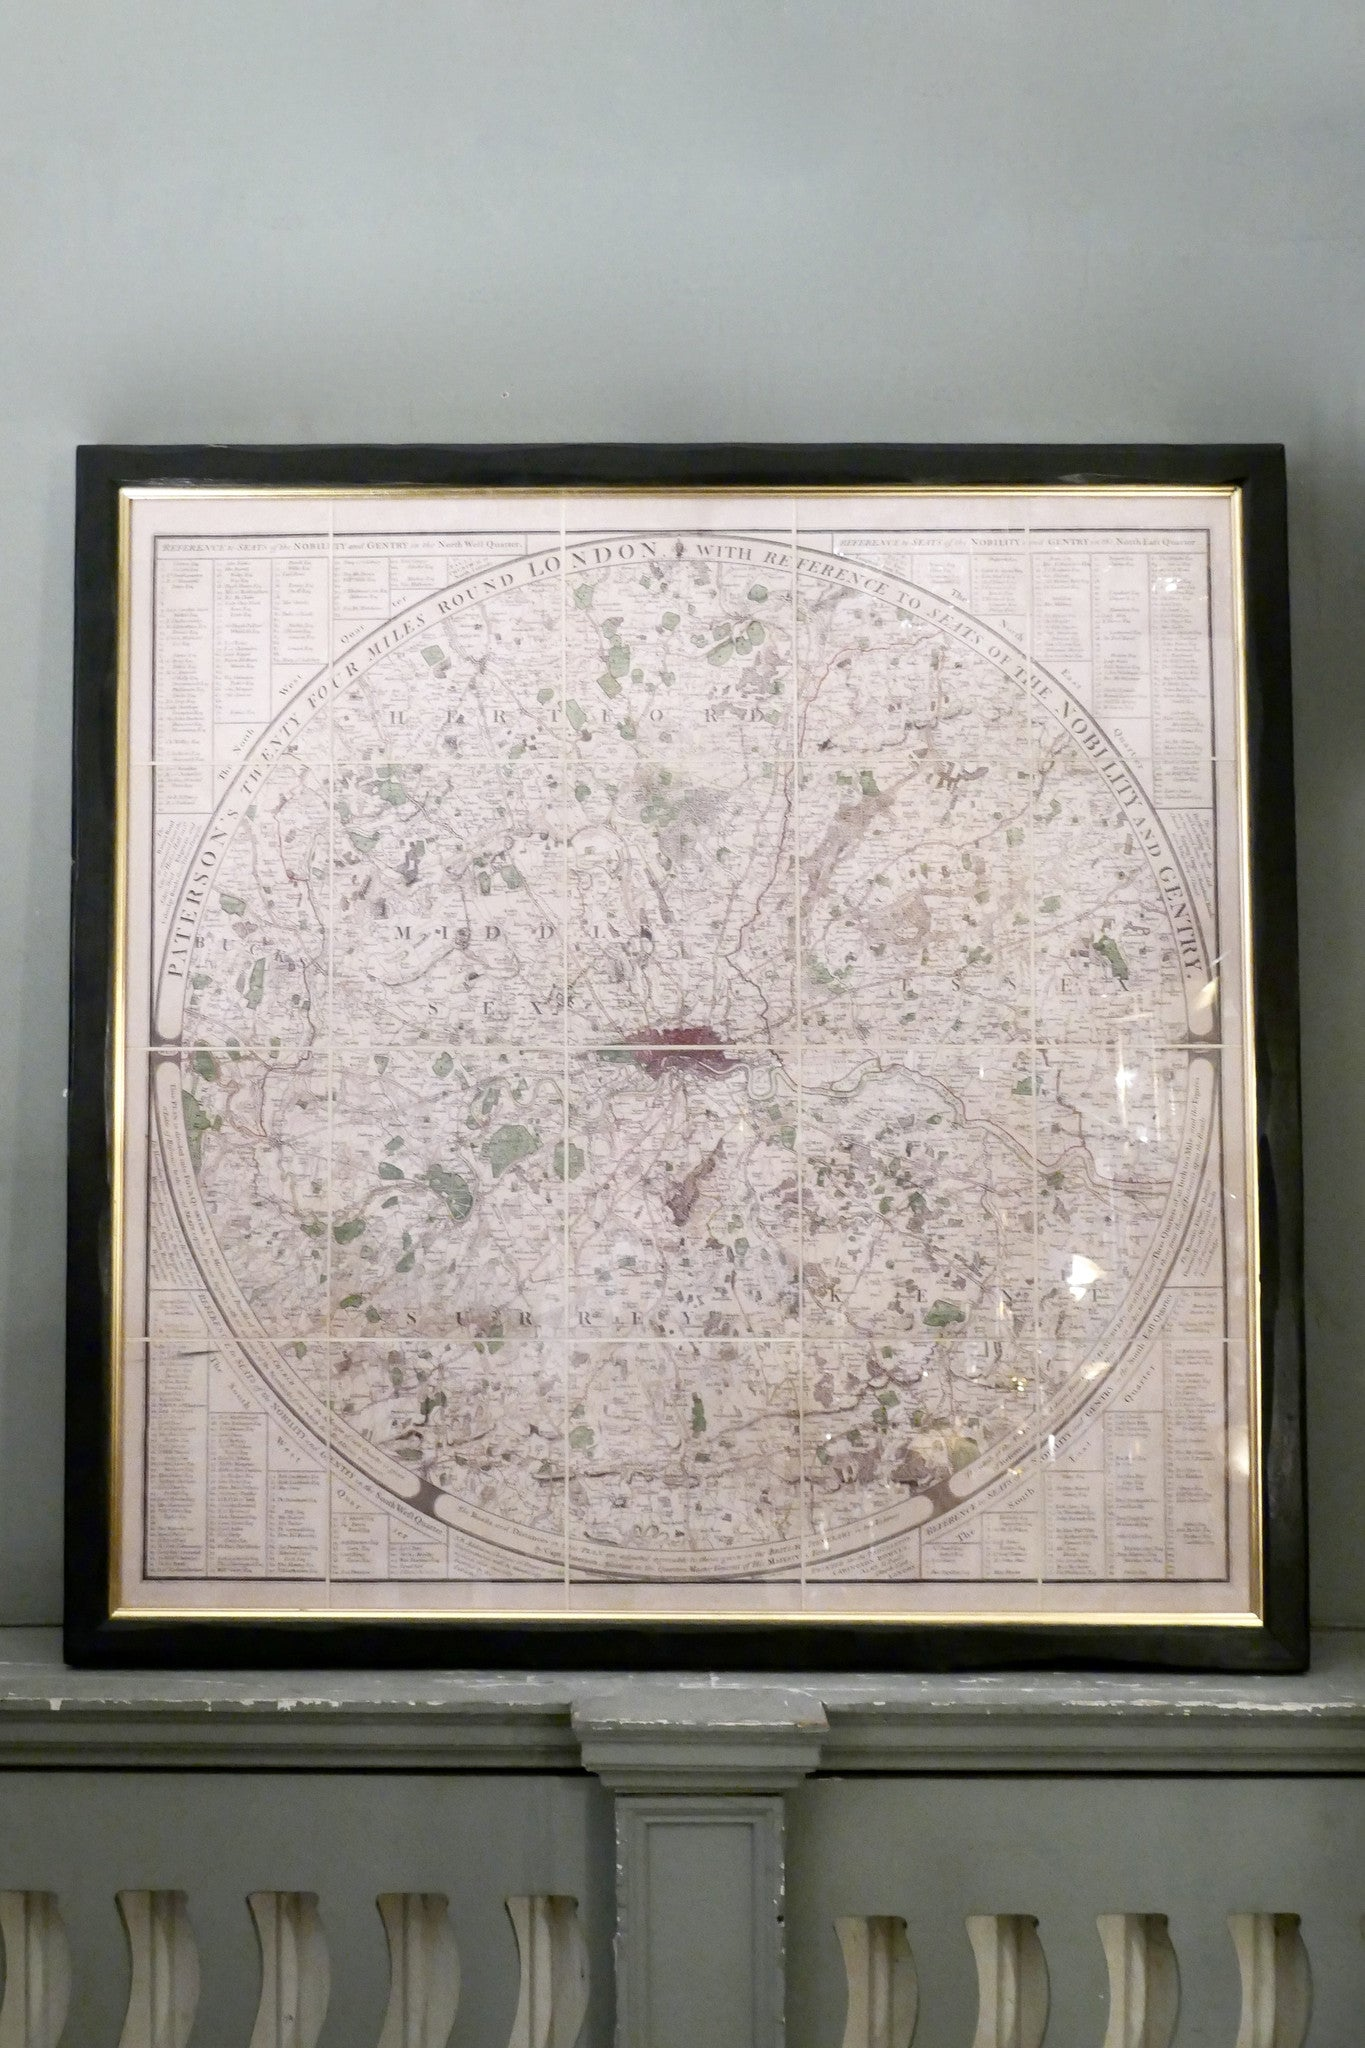 X A framed linen backed , hand finished facsimile of Paterson's map of london.